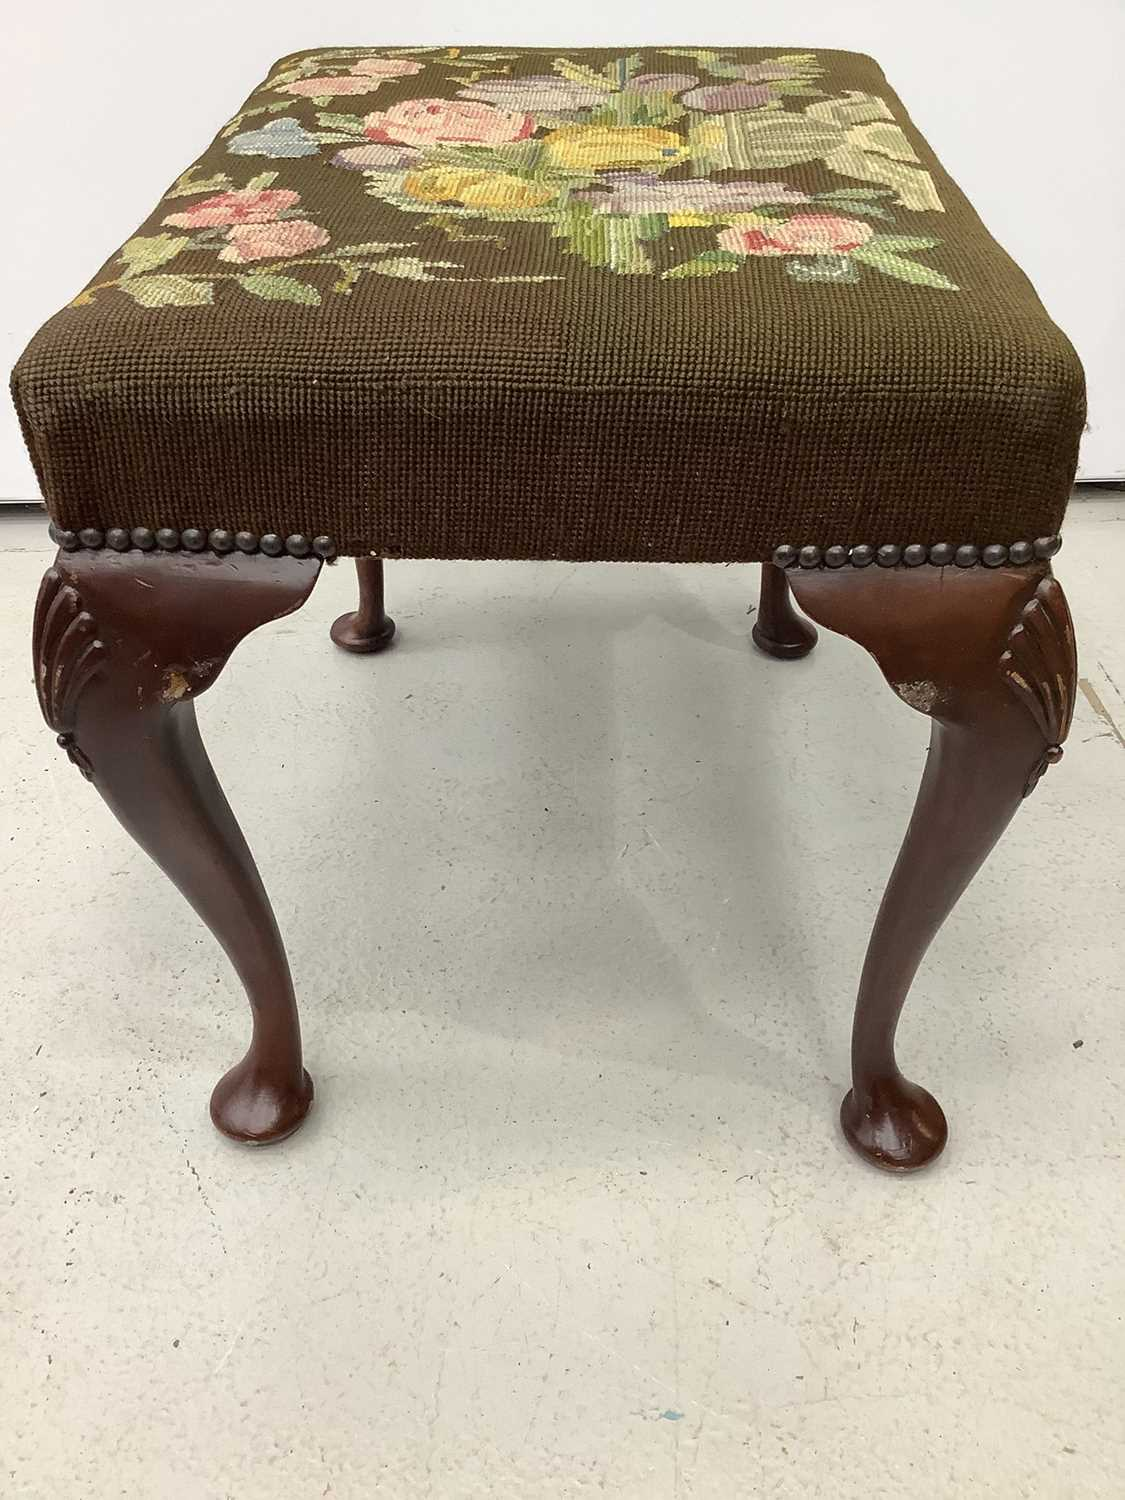 Good quality mahogany stool with floral tapestry seat on cabriole legs with shell knees, 52cm wide x - Image 3 of 6